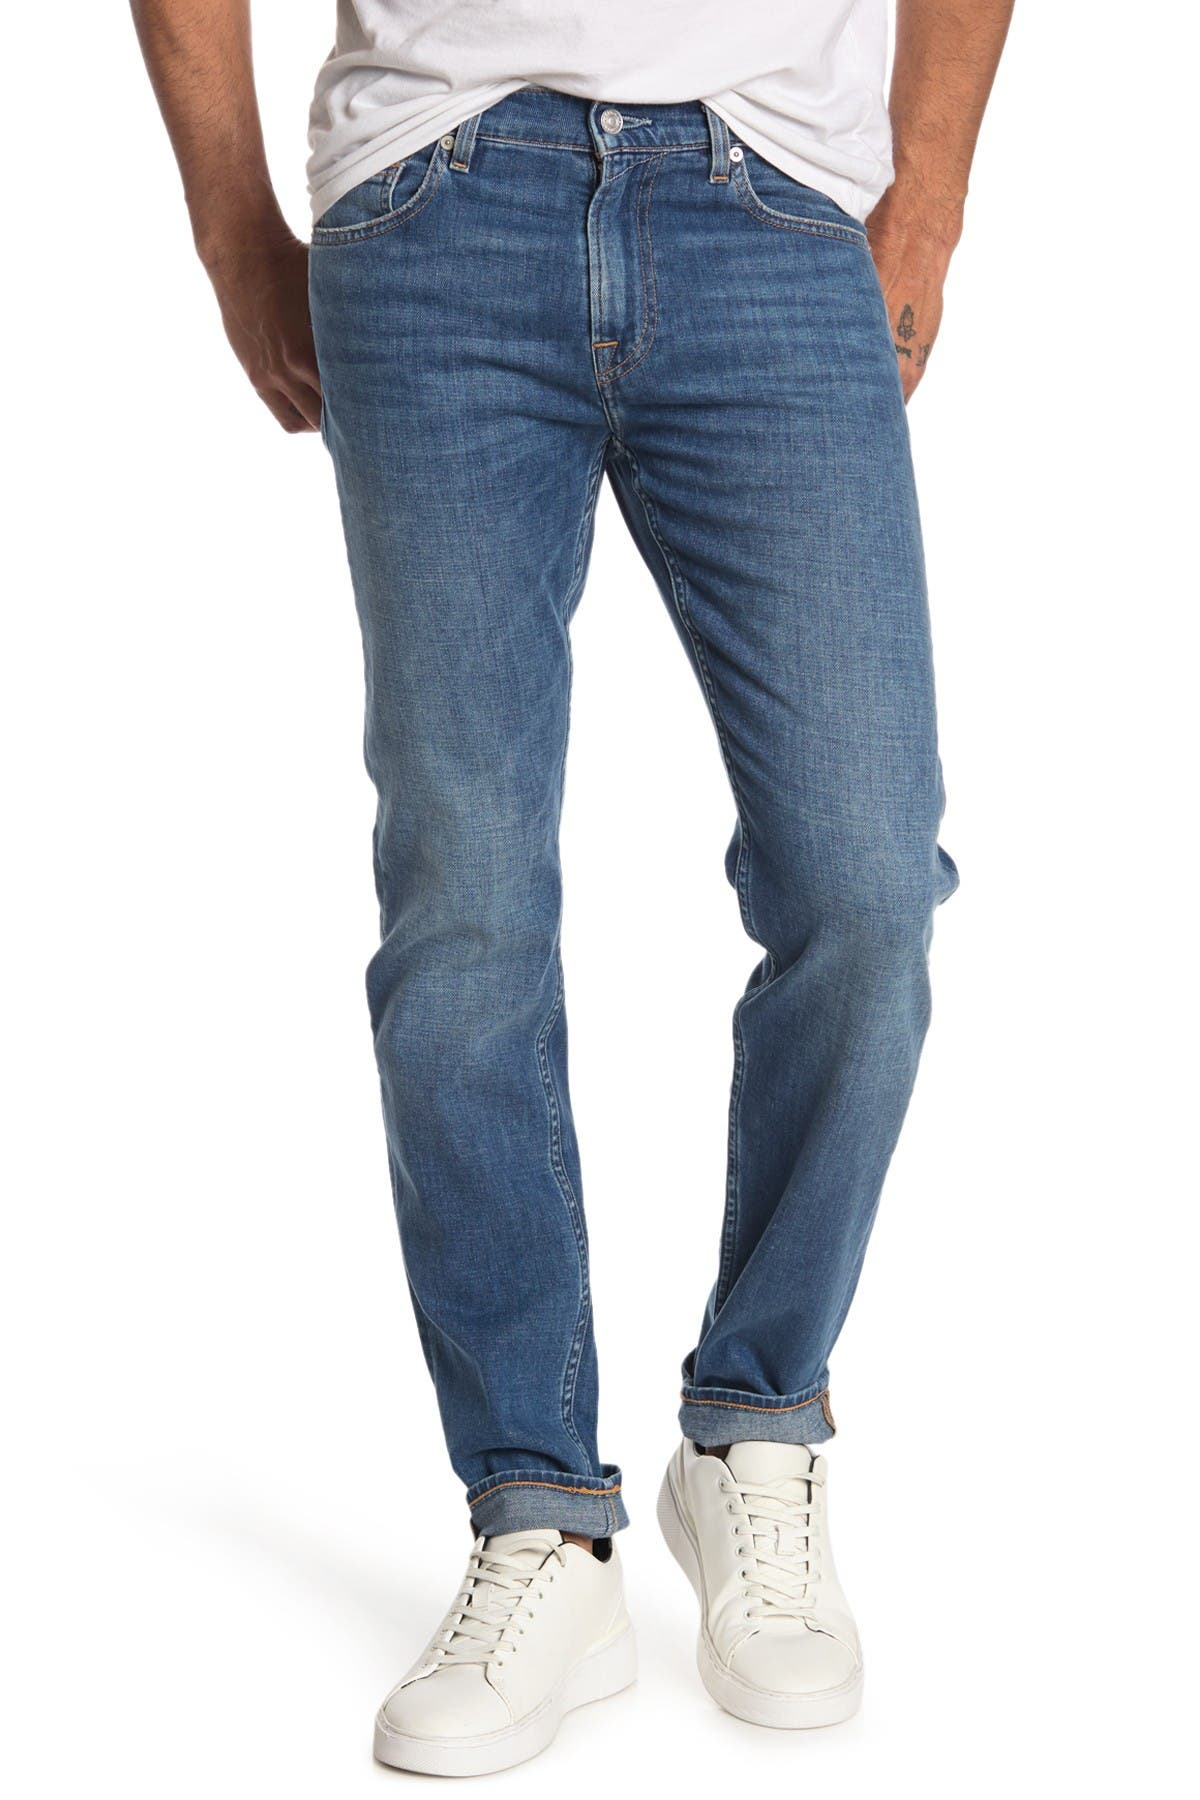 Image of 7 For All Mankind Paxtyn Slim Fit Skinny Jeans